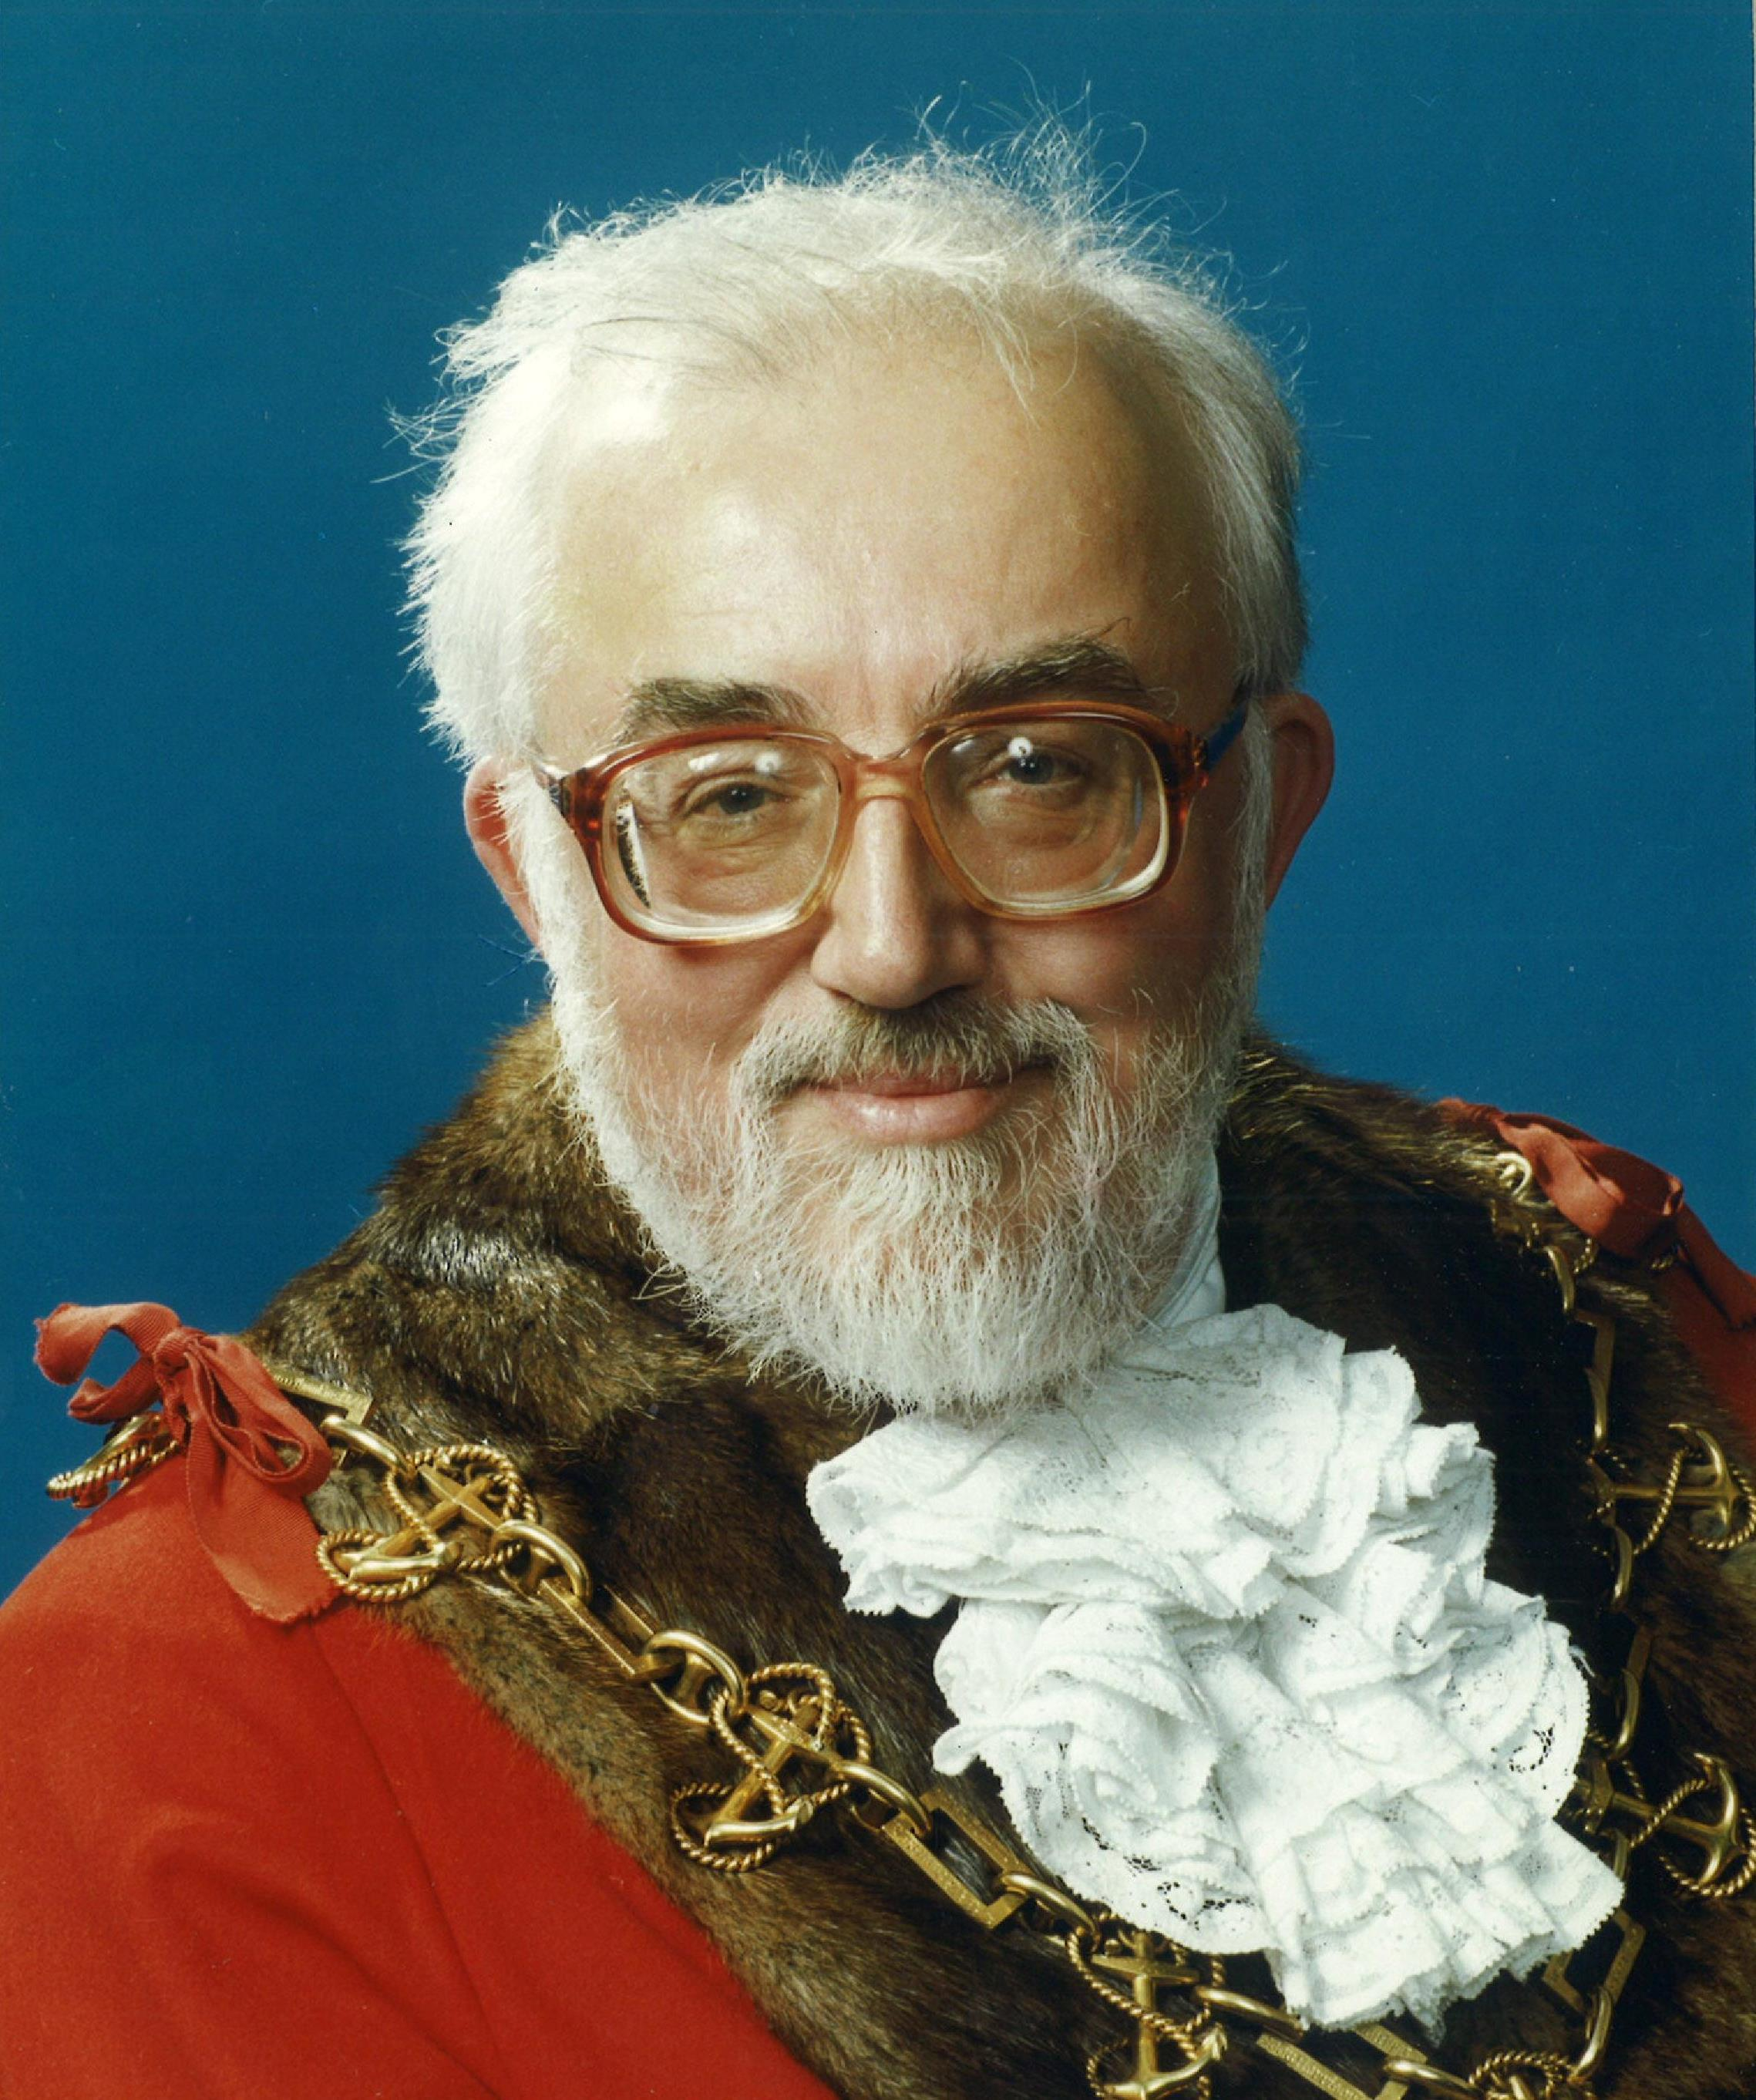 Former Mayor of Stockton dies aged 76